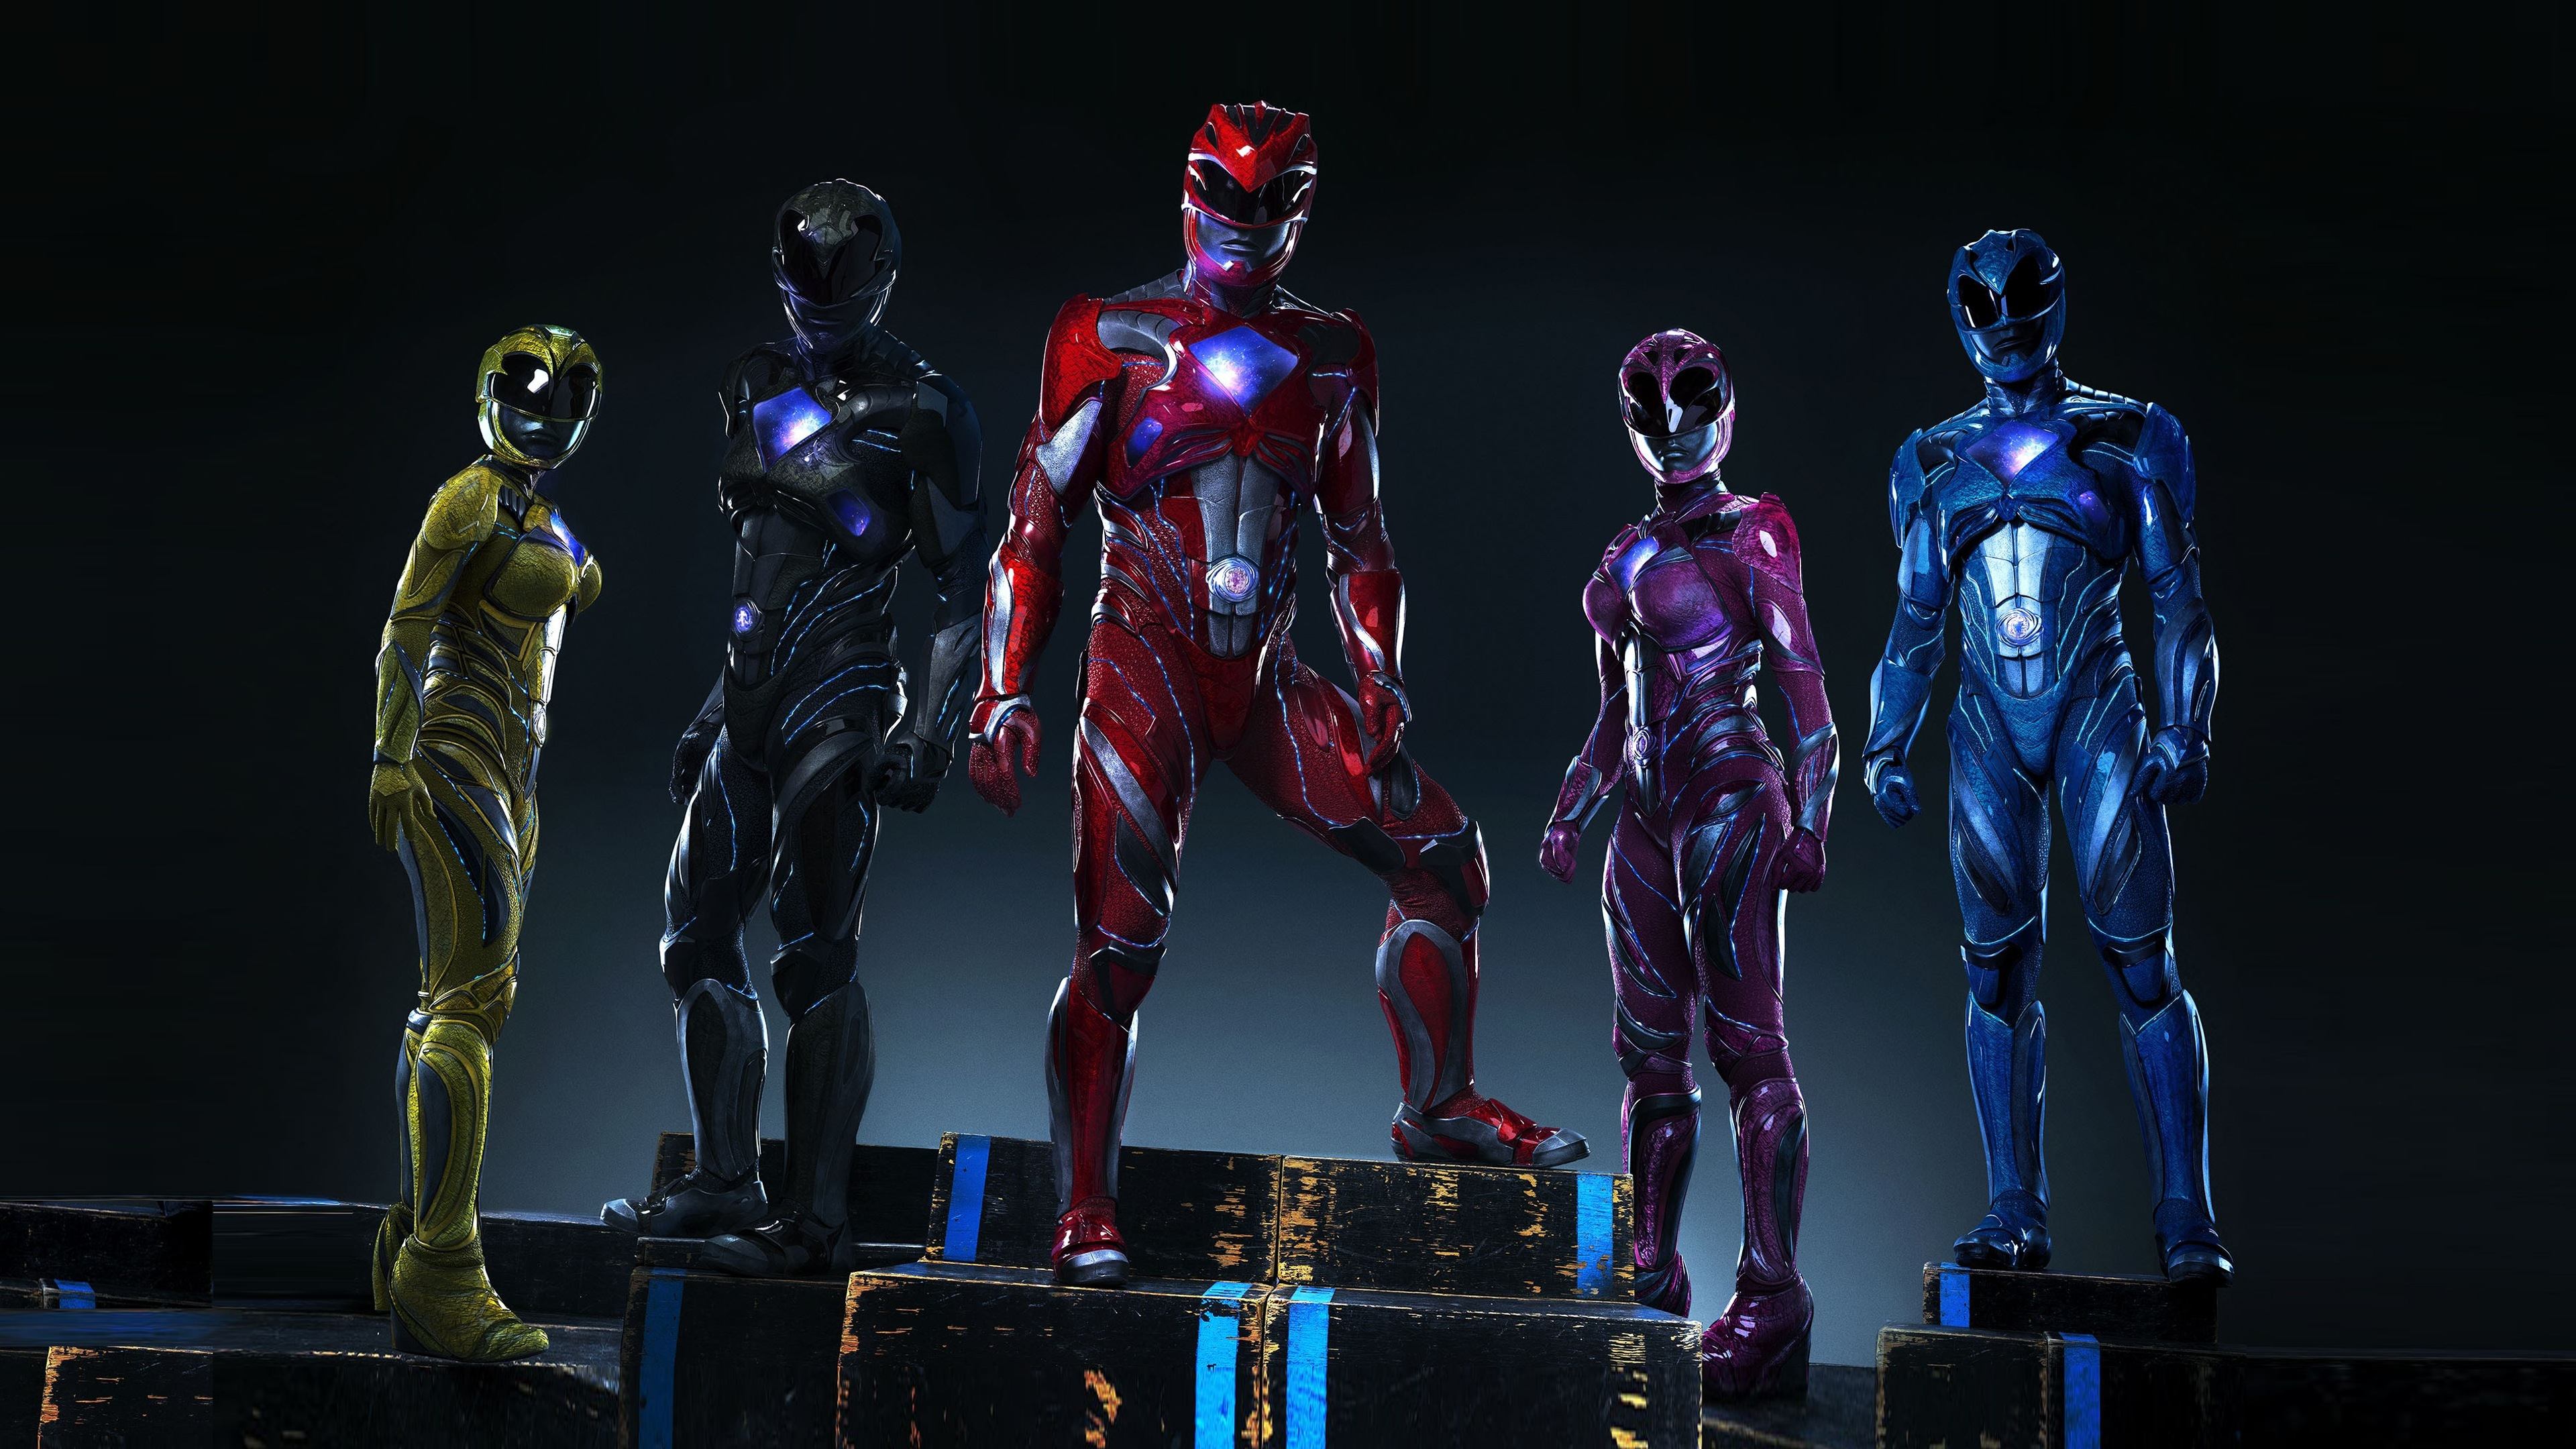 power rangers 2017 1536363805 - Power Rangers 2017 - power rangers wallpapers, movies wallpapers, 2017 movies wallpapers